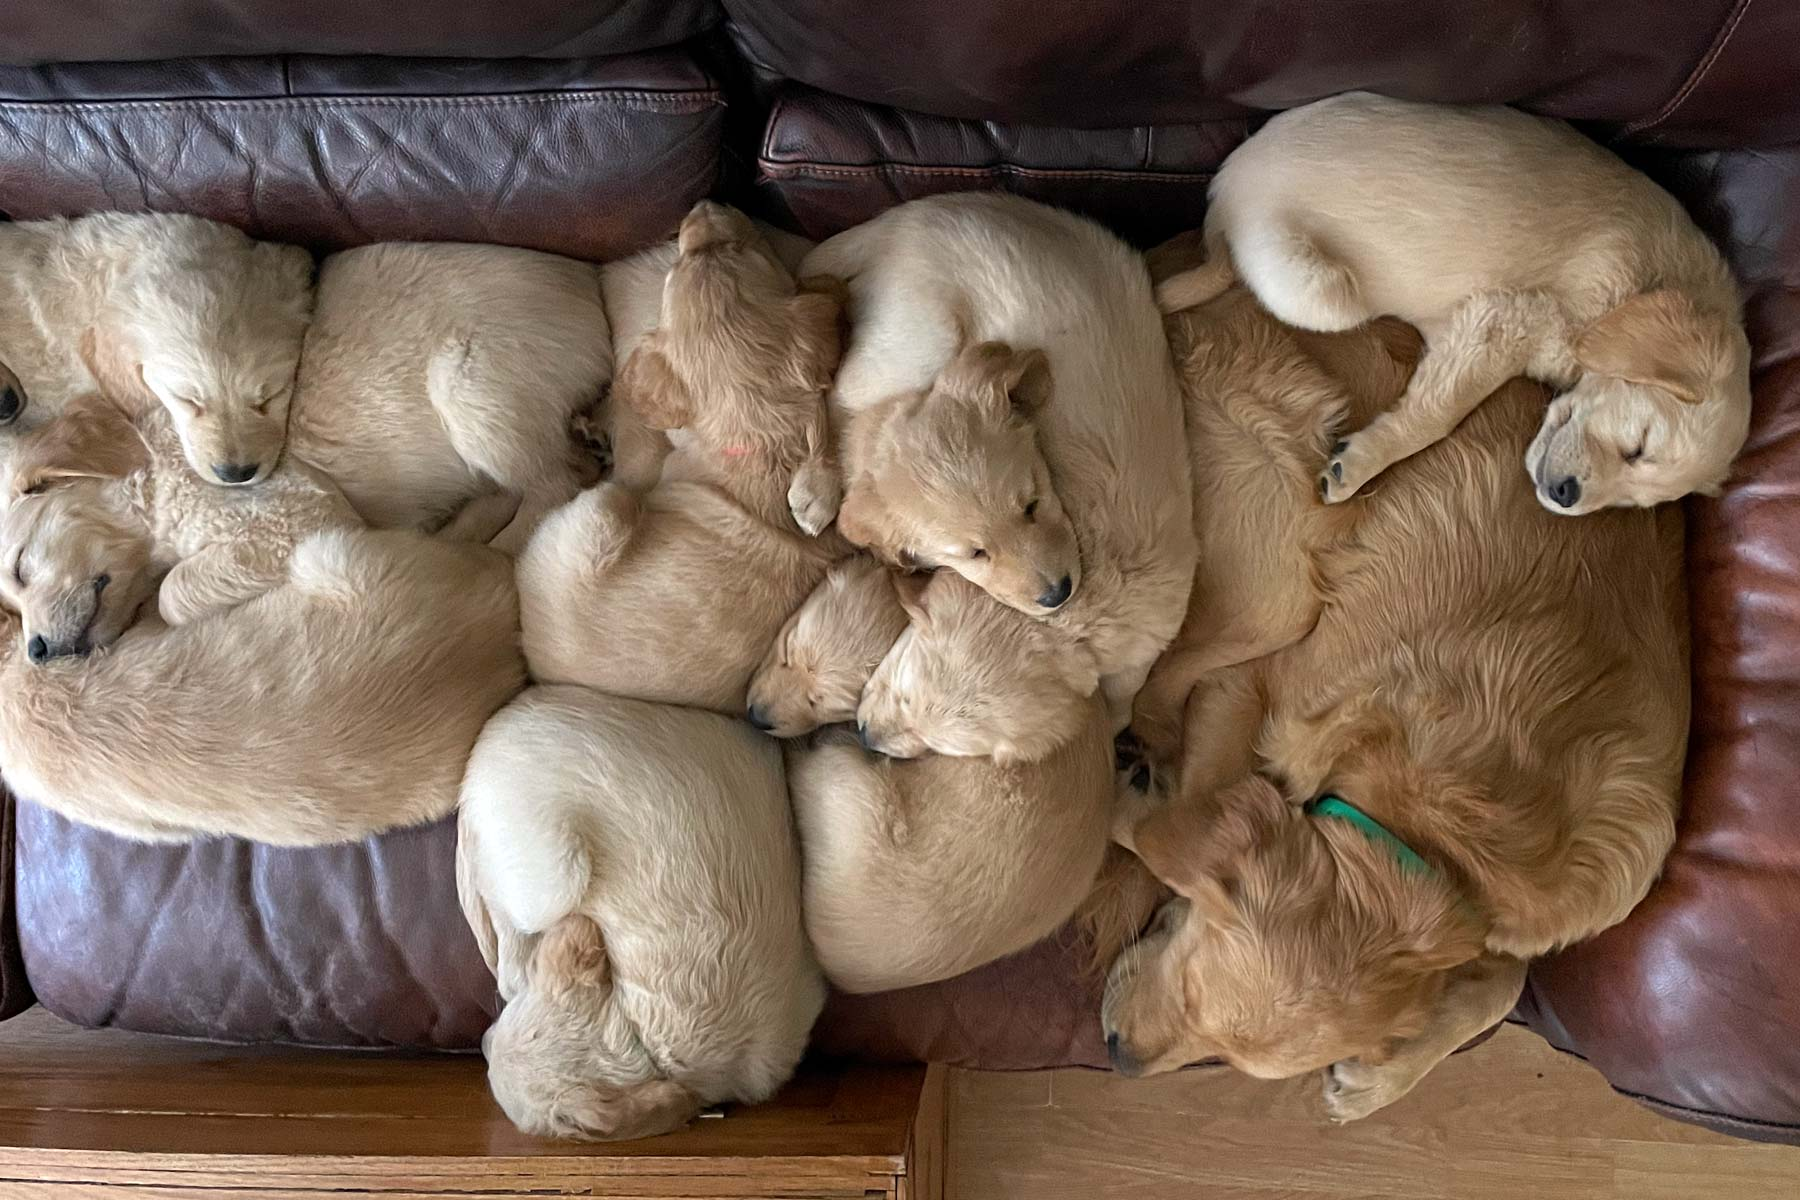 golden retriever puppies sleeping on a leather couch